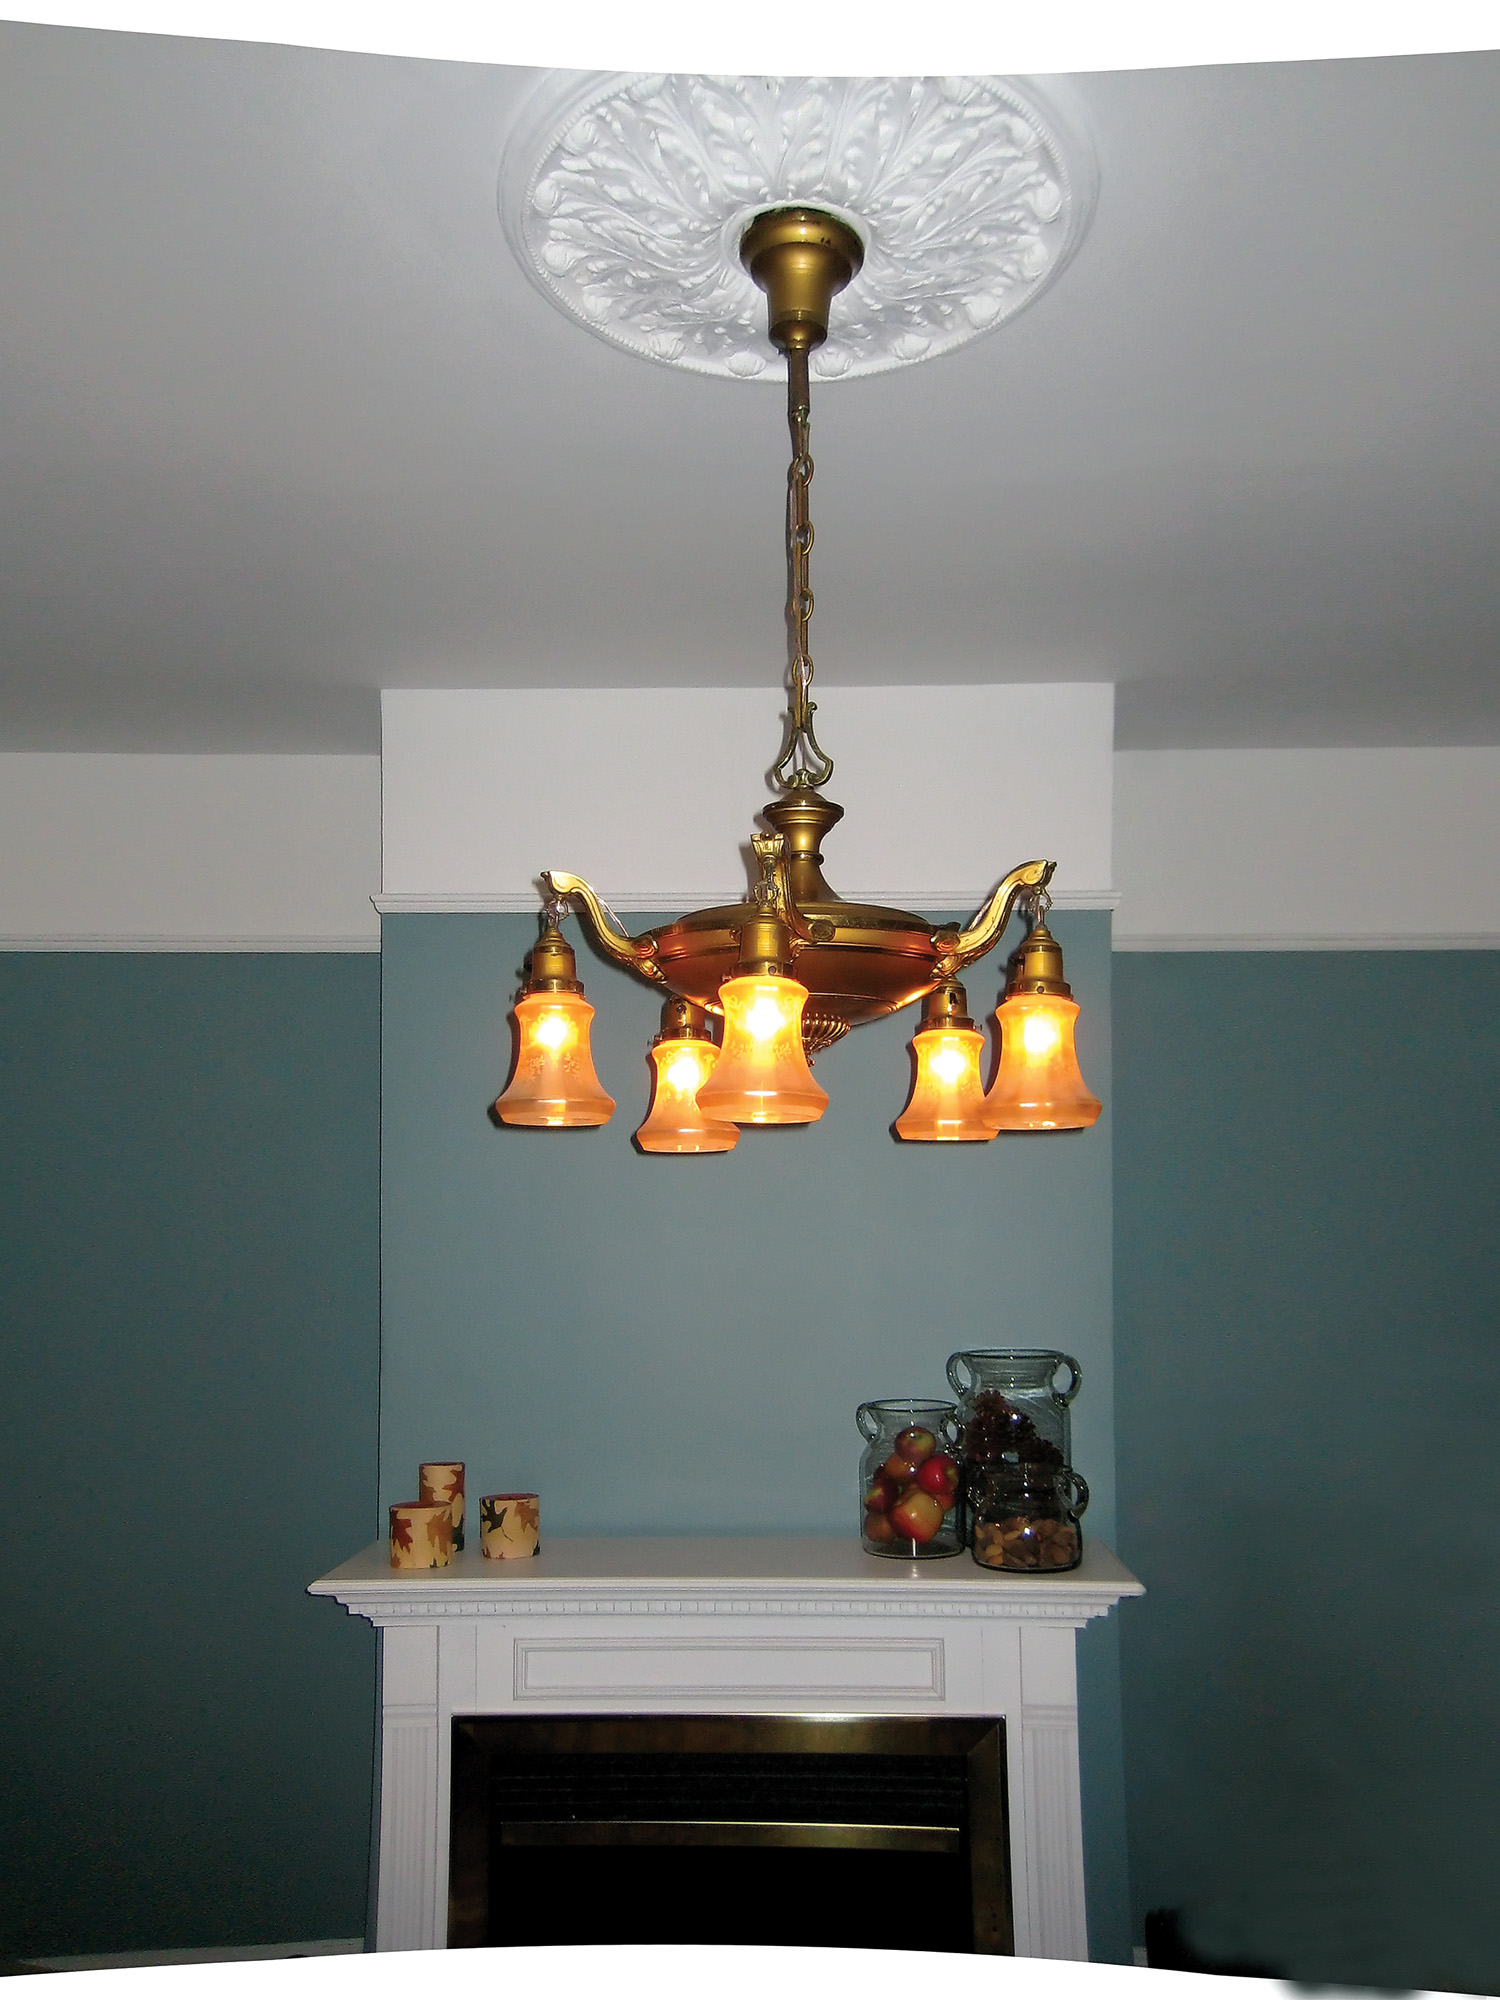 hight resolution of lighting fixture old house